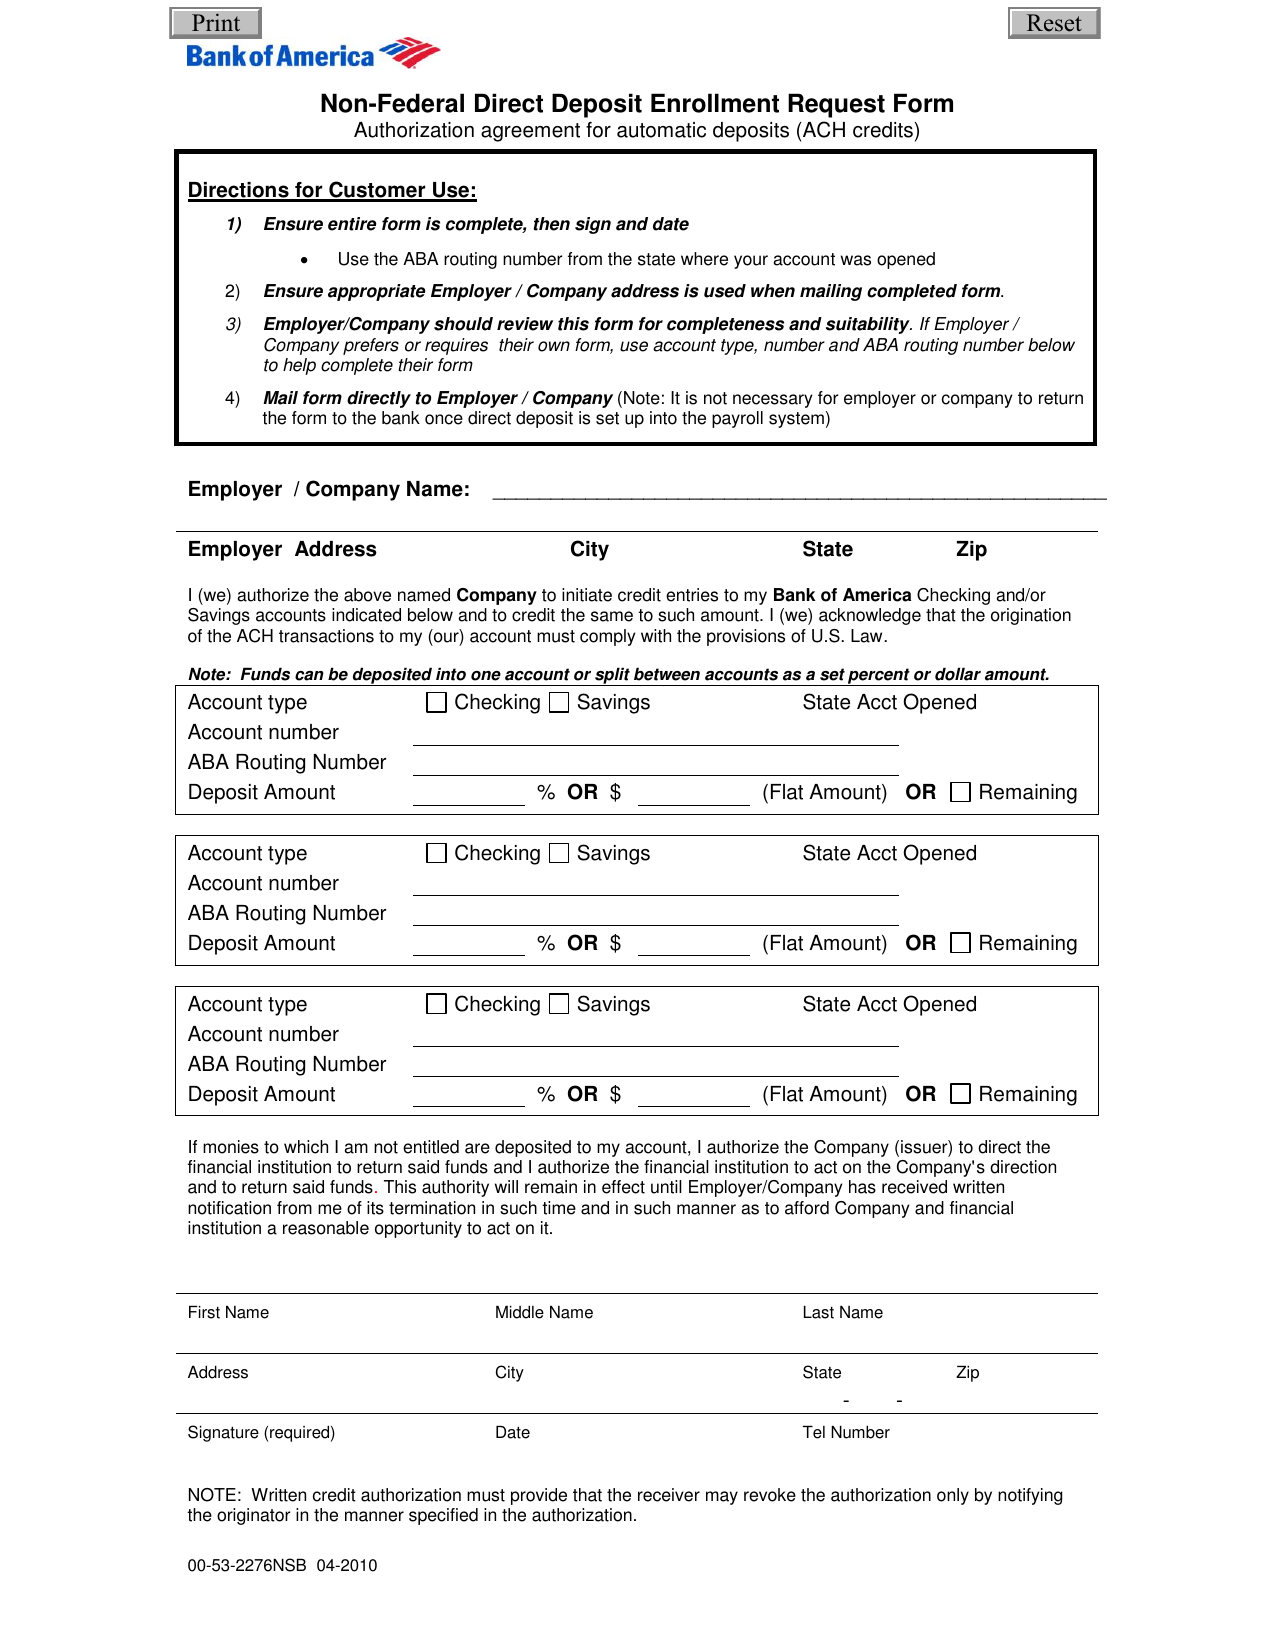 anz bank new account application form